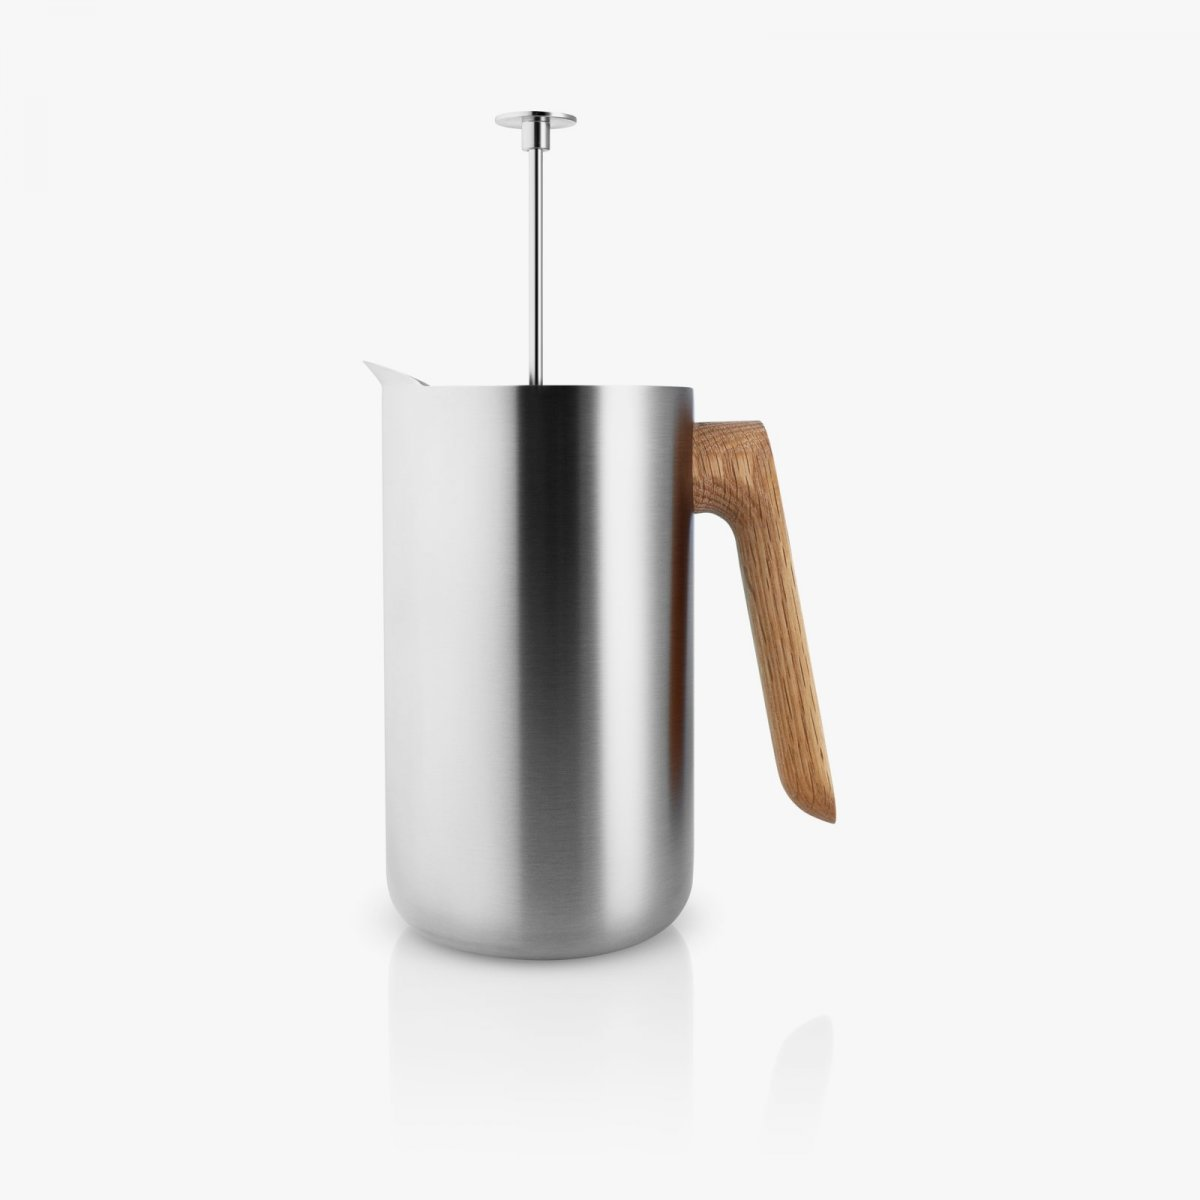 Nordic Kitchen Thermo Cafetiére 1.0 L.